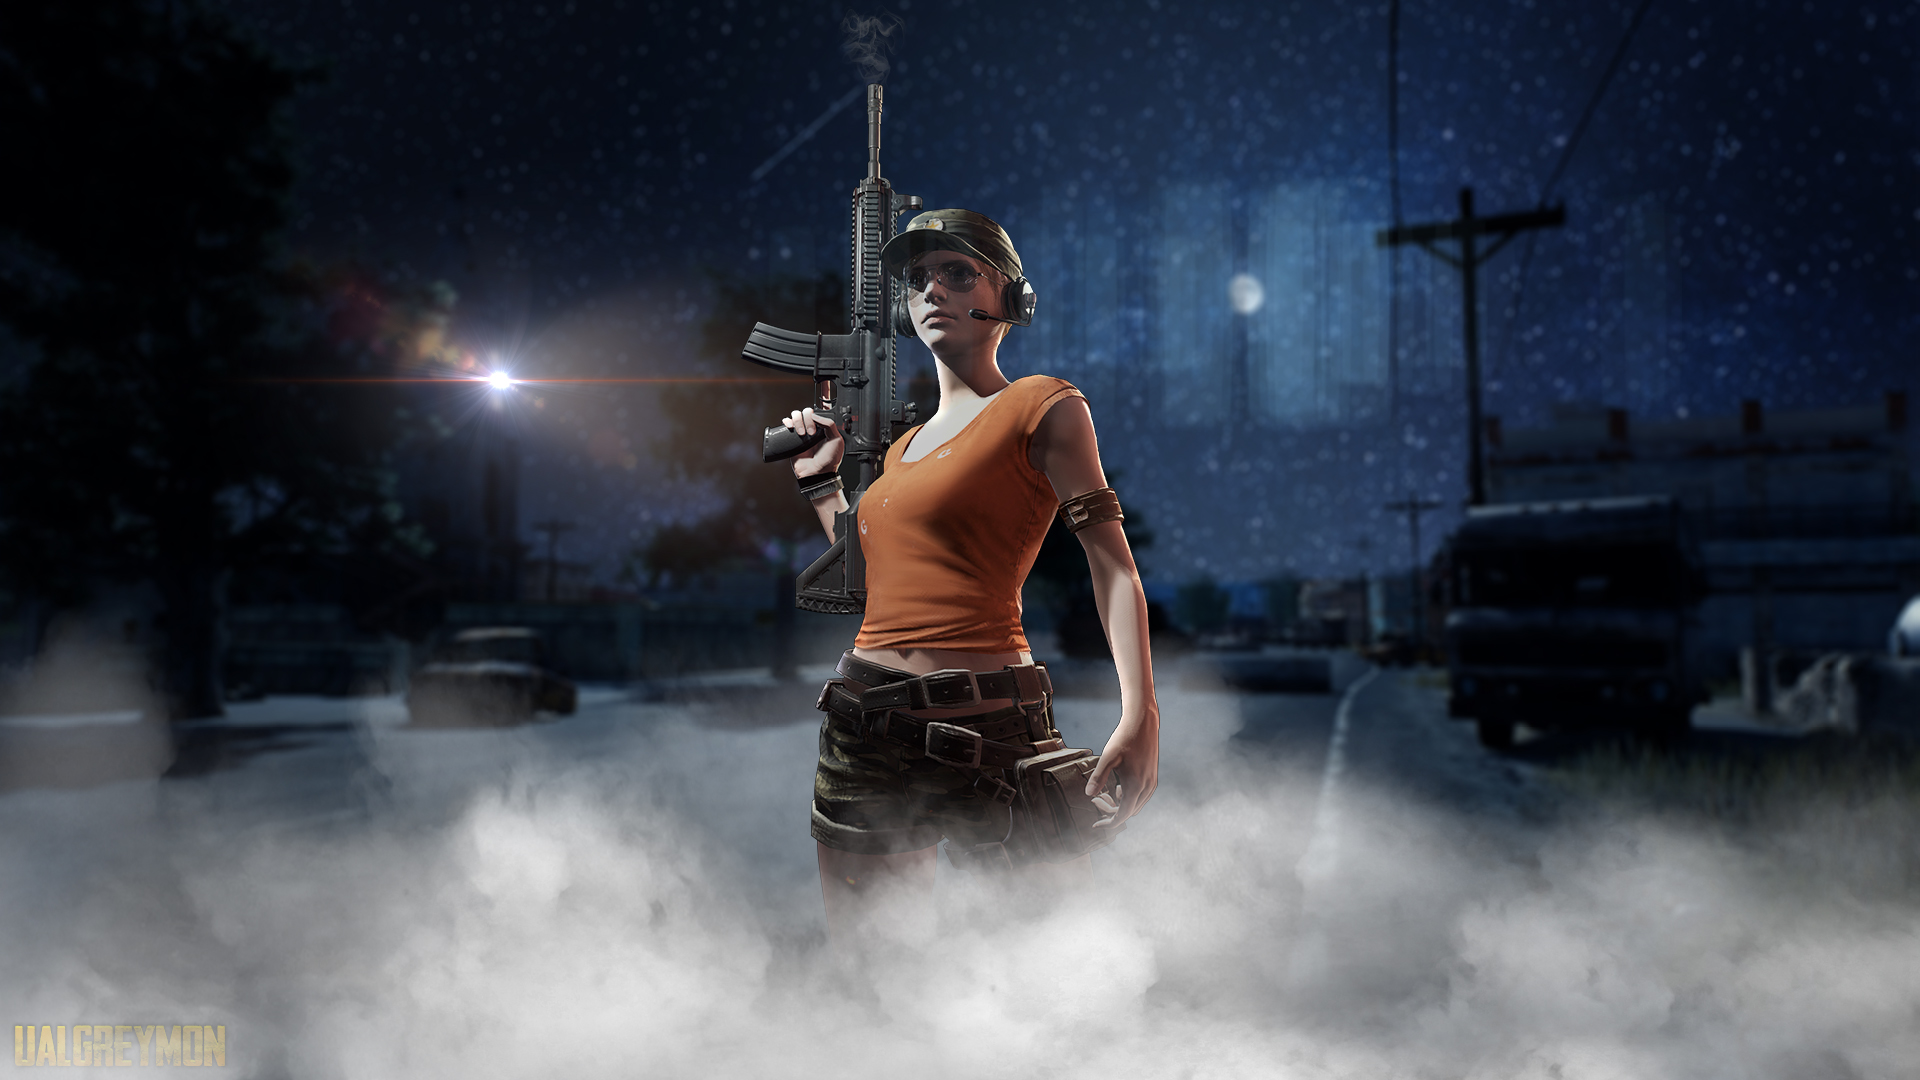 Pubg Wallpapers: Pubg Night, HD Games, 4k Wallpapers, Images, Backgrounds